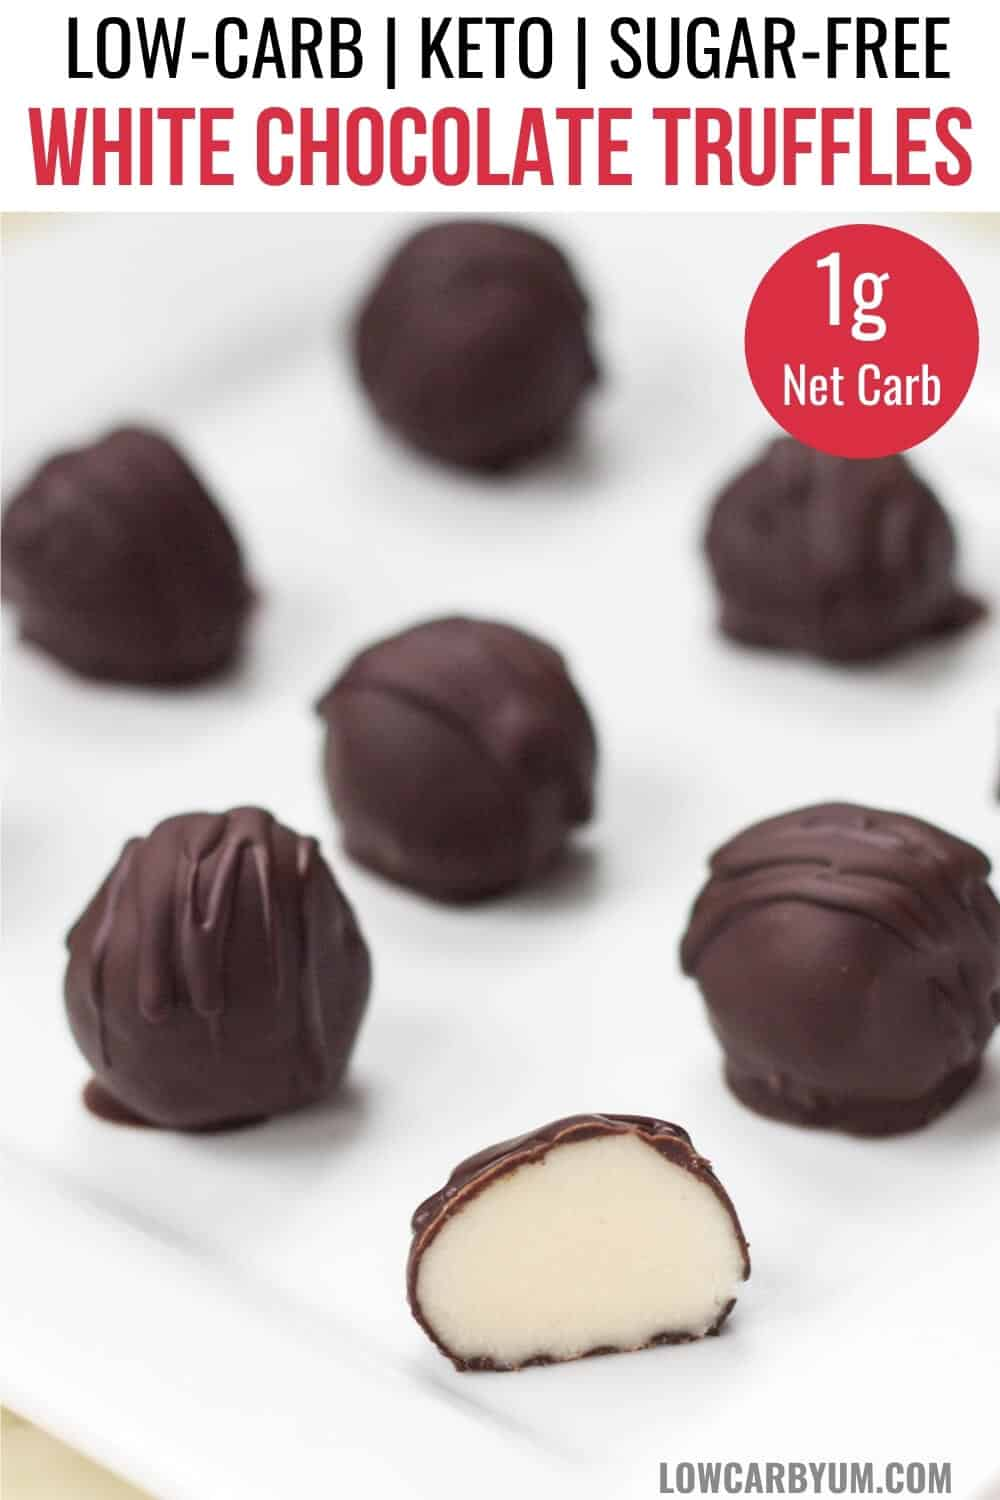 keto white chocolate truffles pinterest image